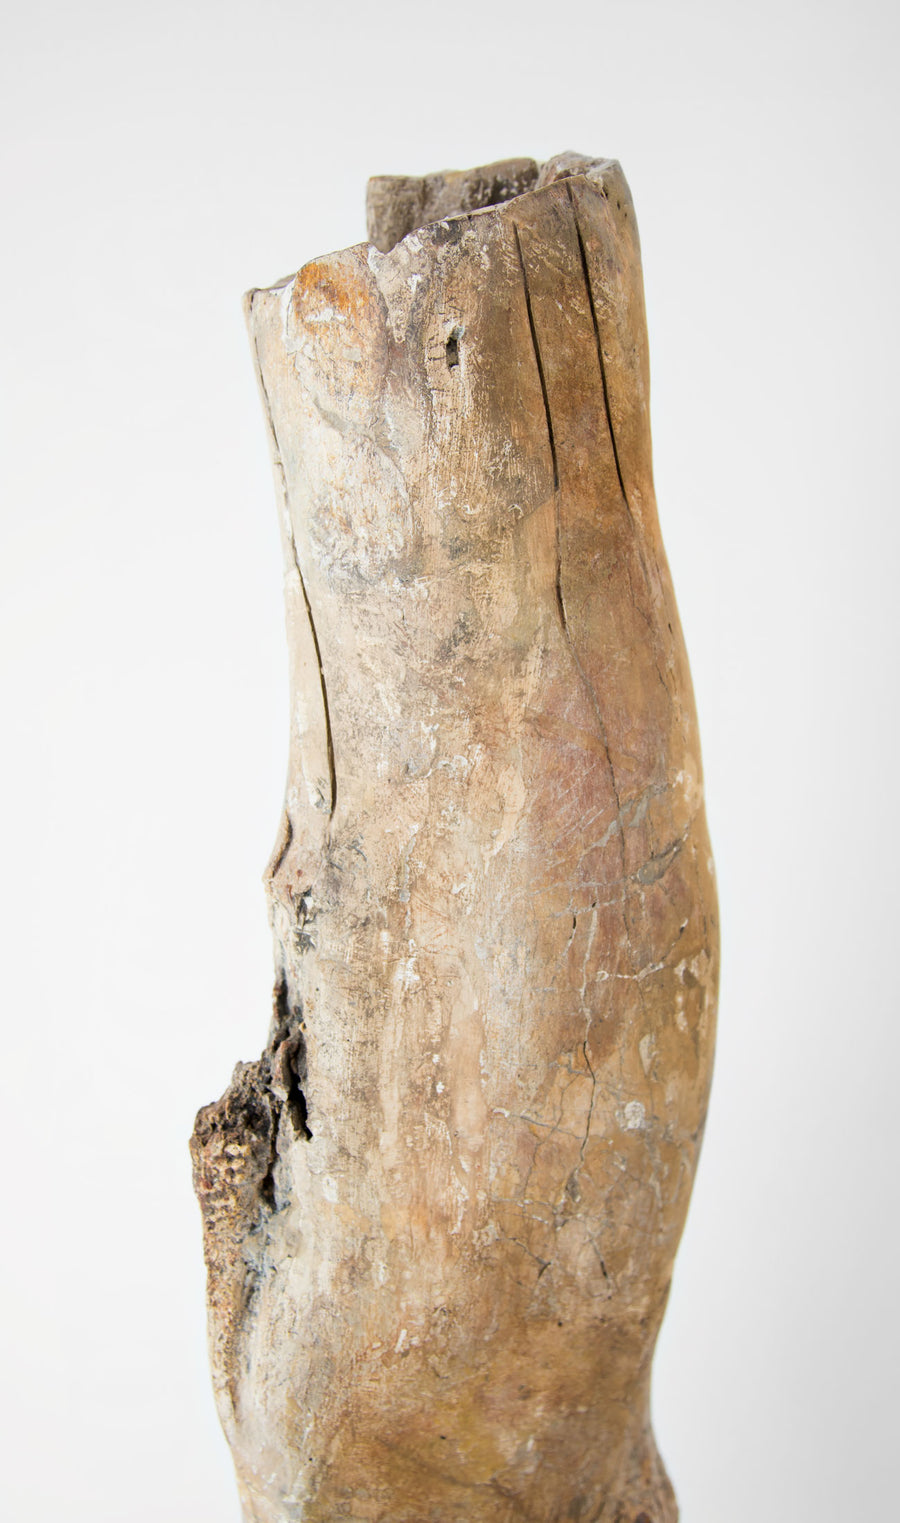 Scientifically important theropod dinosaur fossil femur bone for sale measuring 685mm at THE FOSSIL STORE